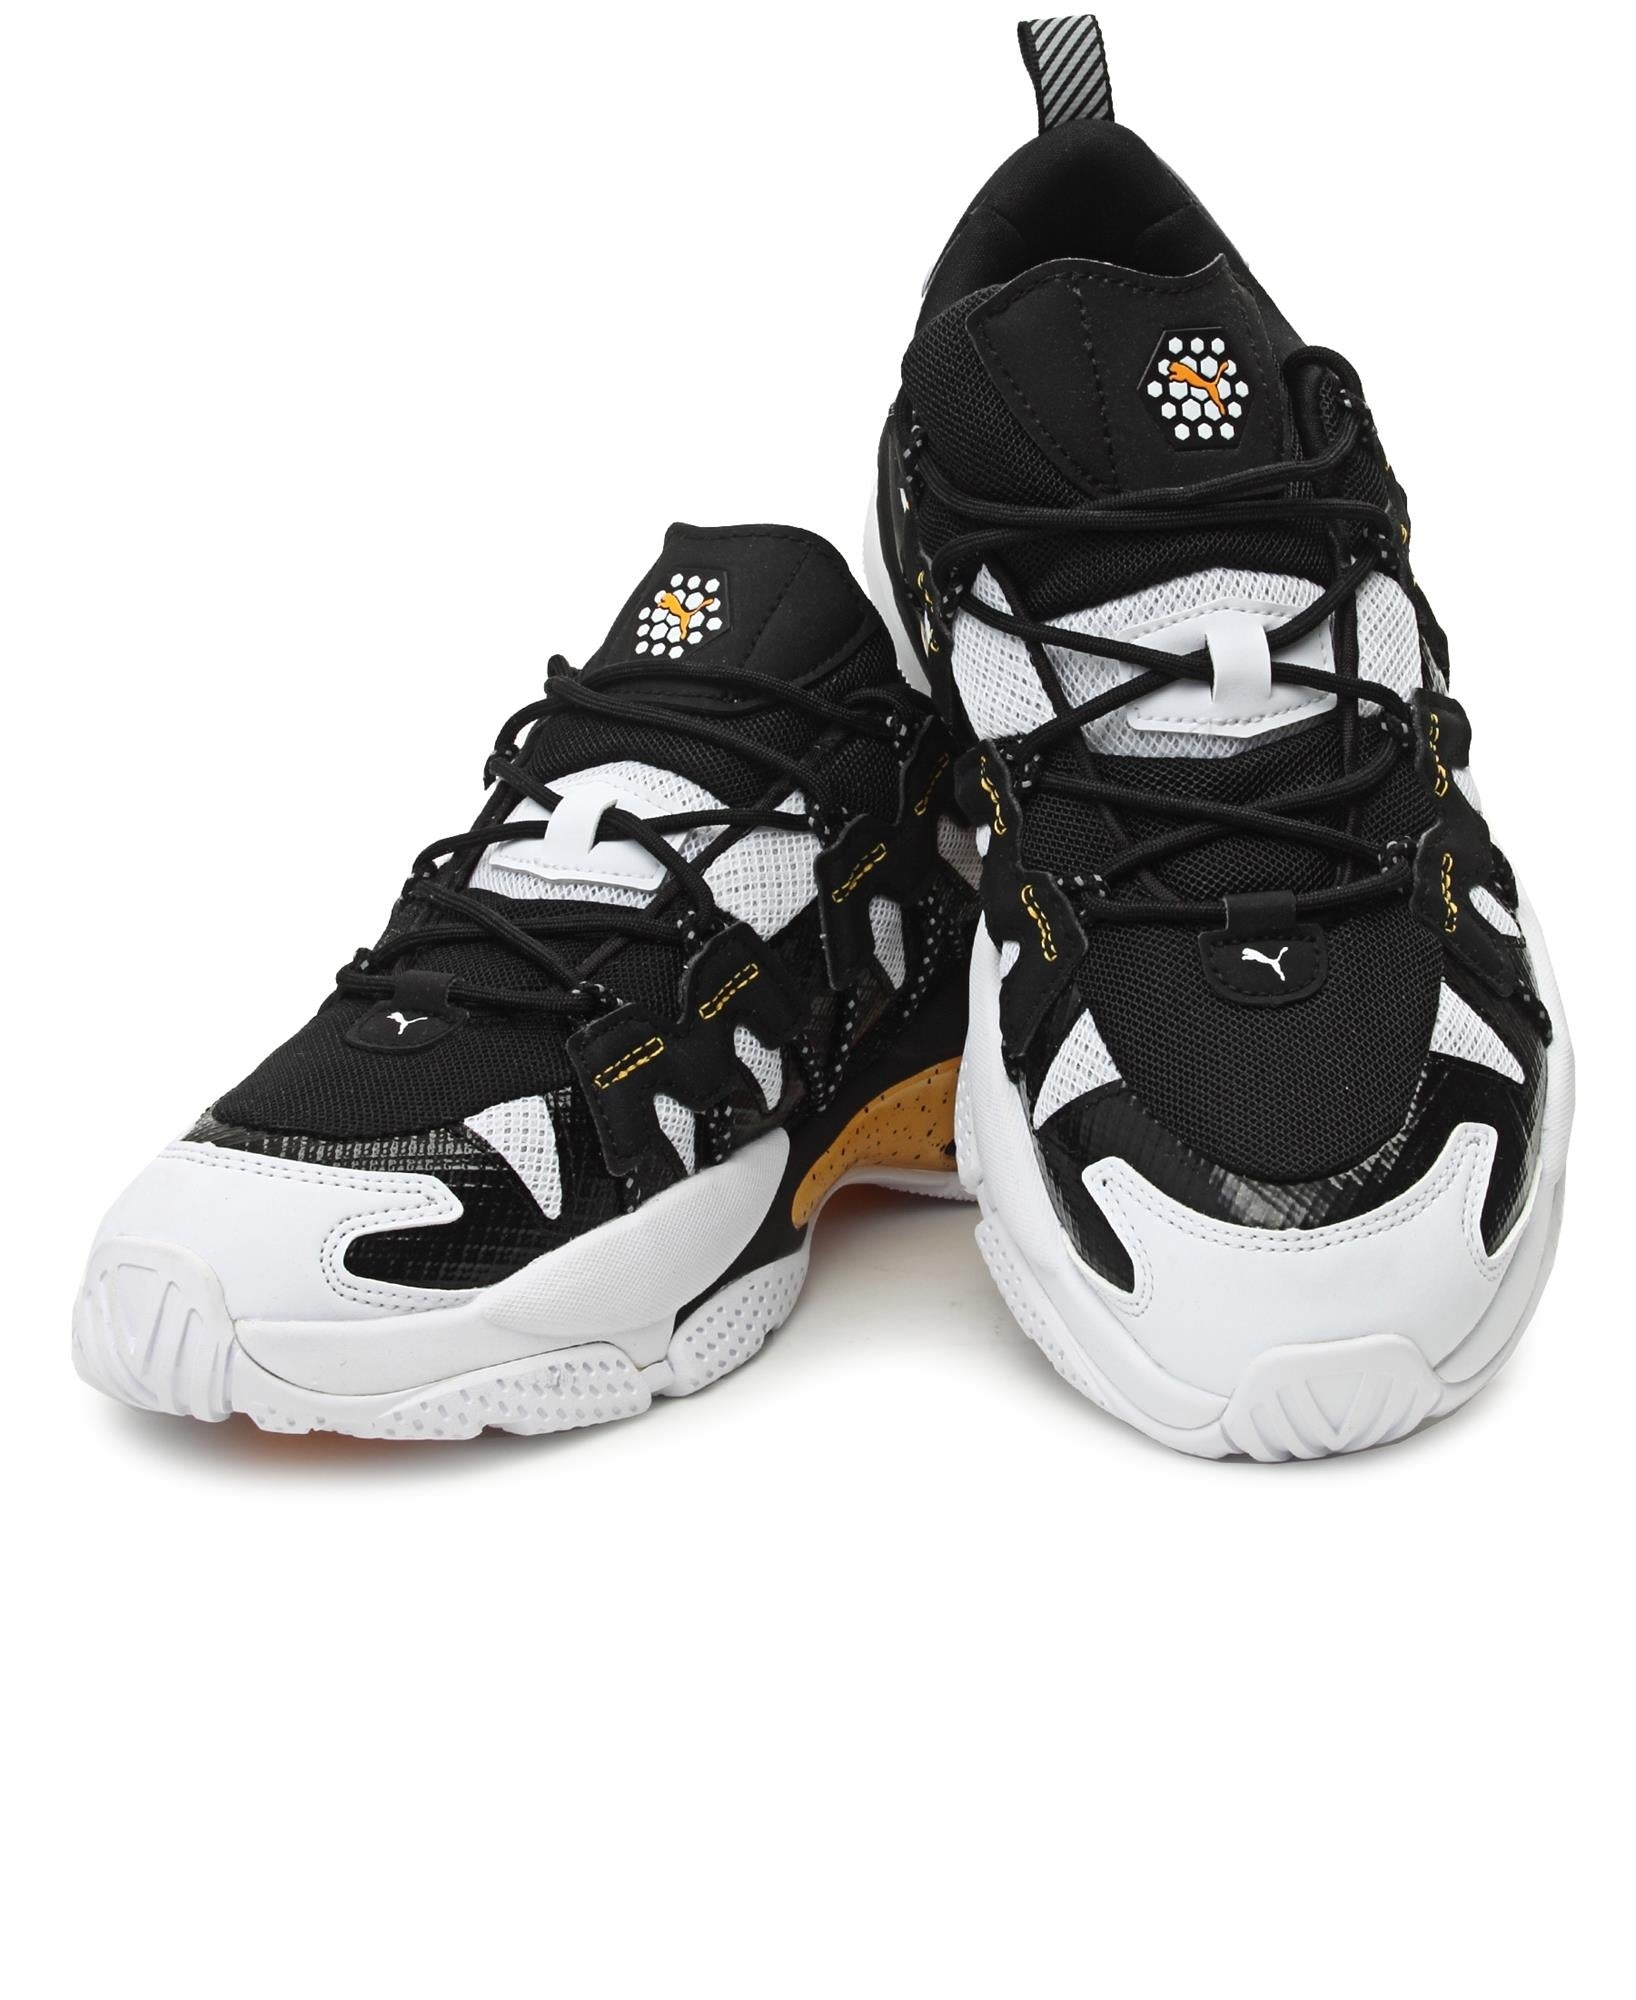 Men's LQD Density Sneakers - Black